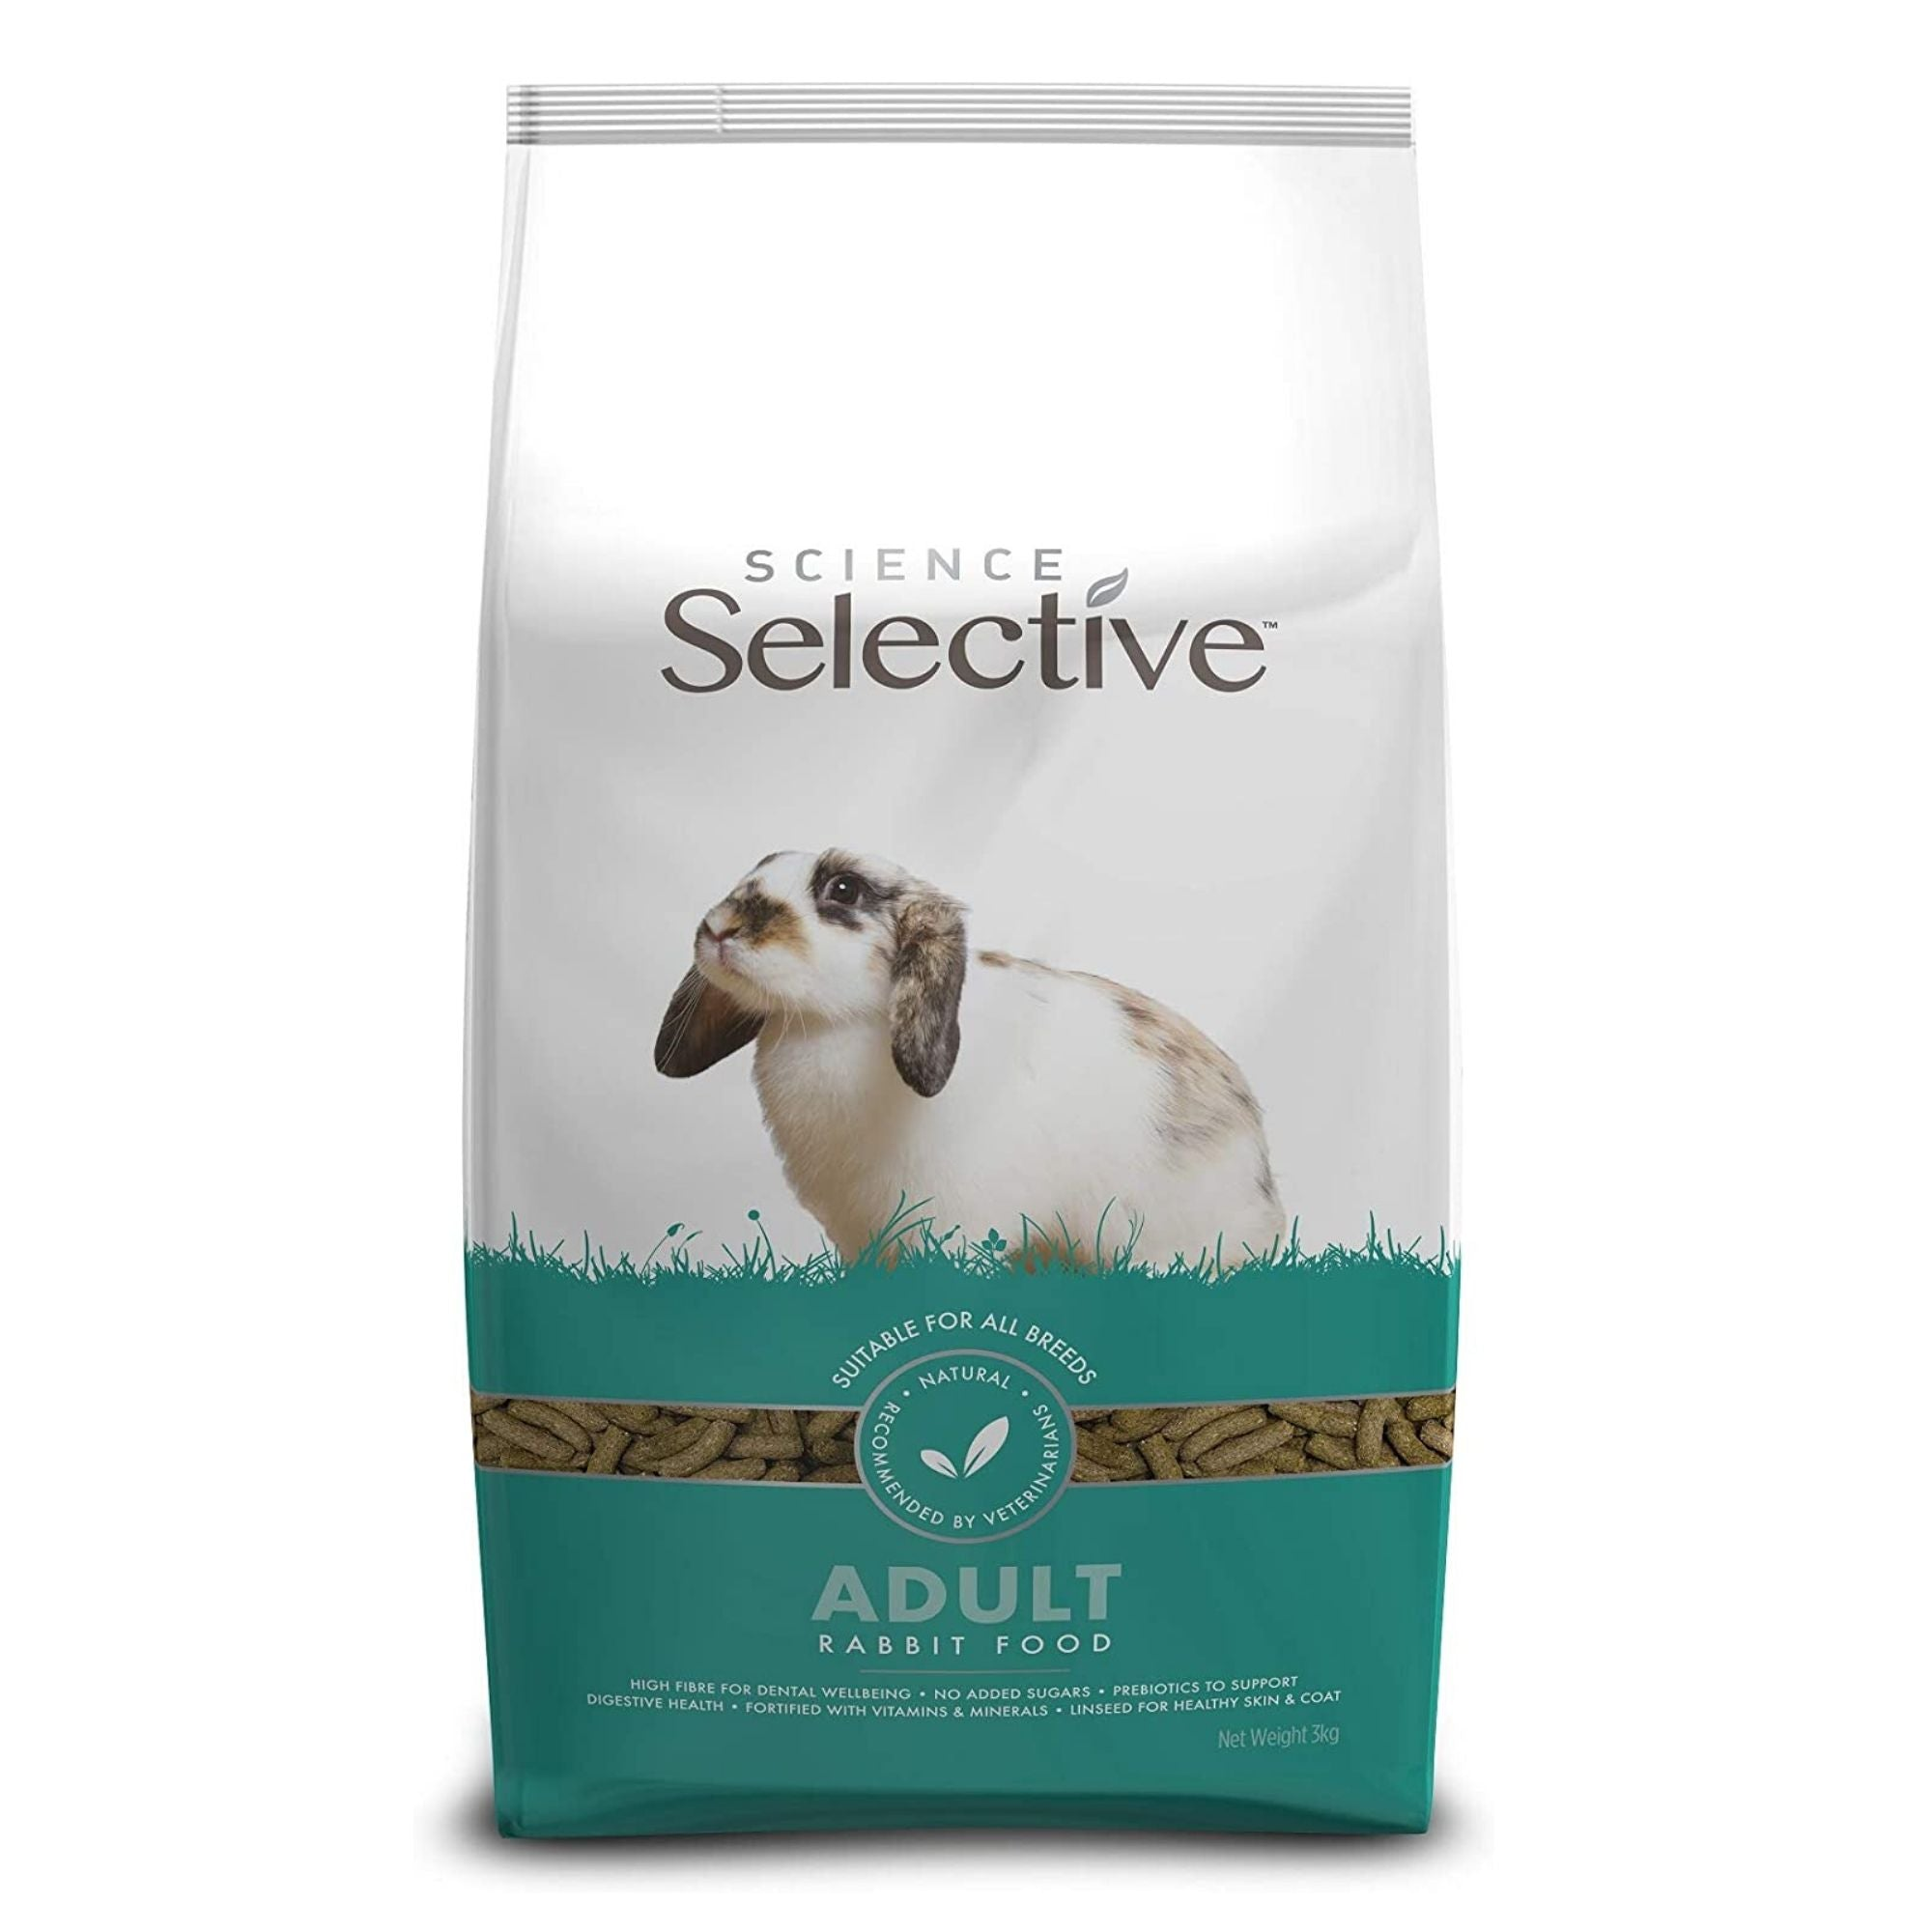 Supreme Science Selective Adult Rabbit Food | Barks & Bunies